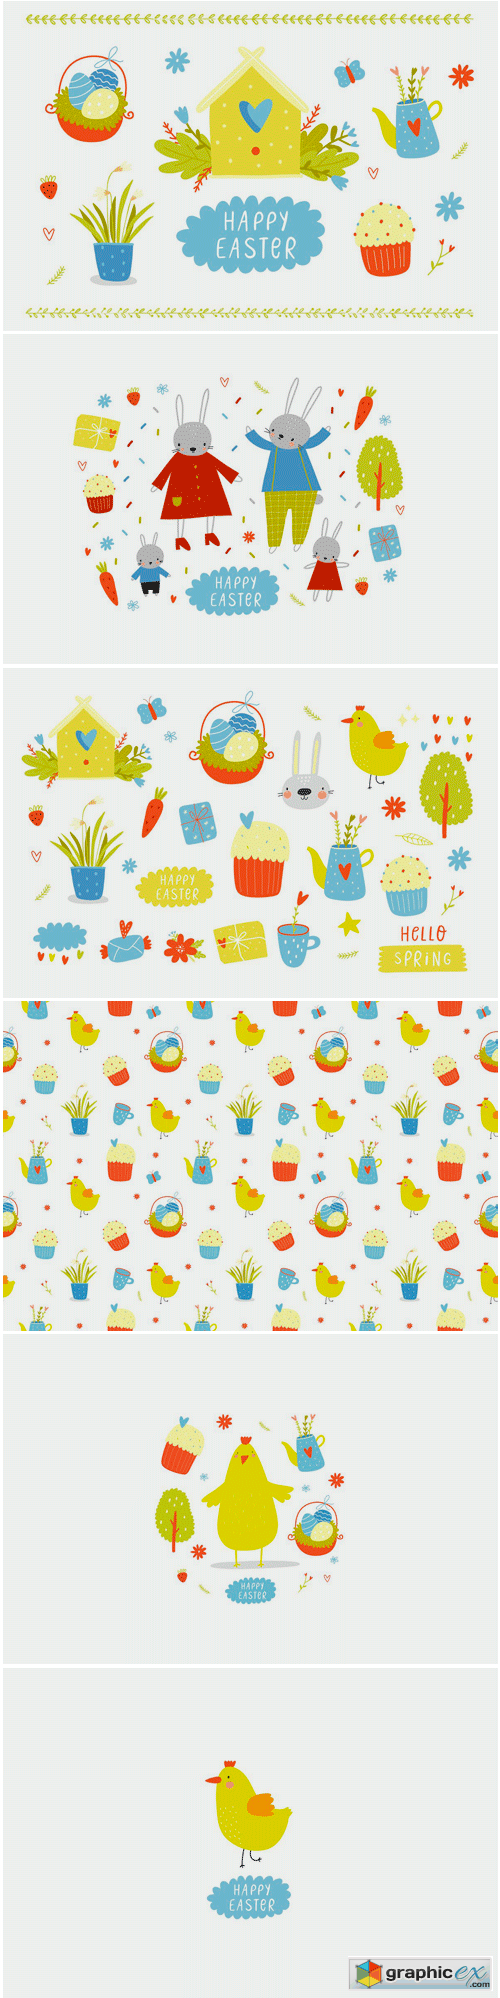 Happy Easter Vector Set with Bunny